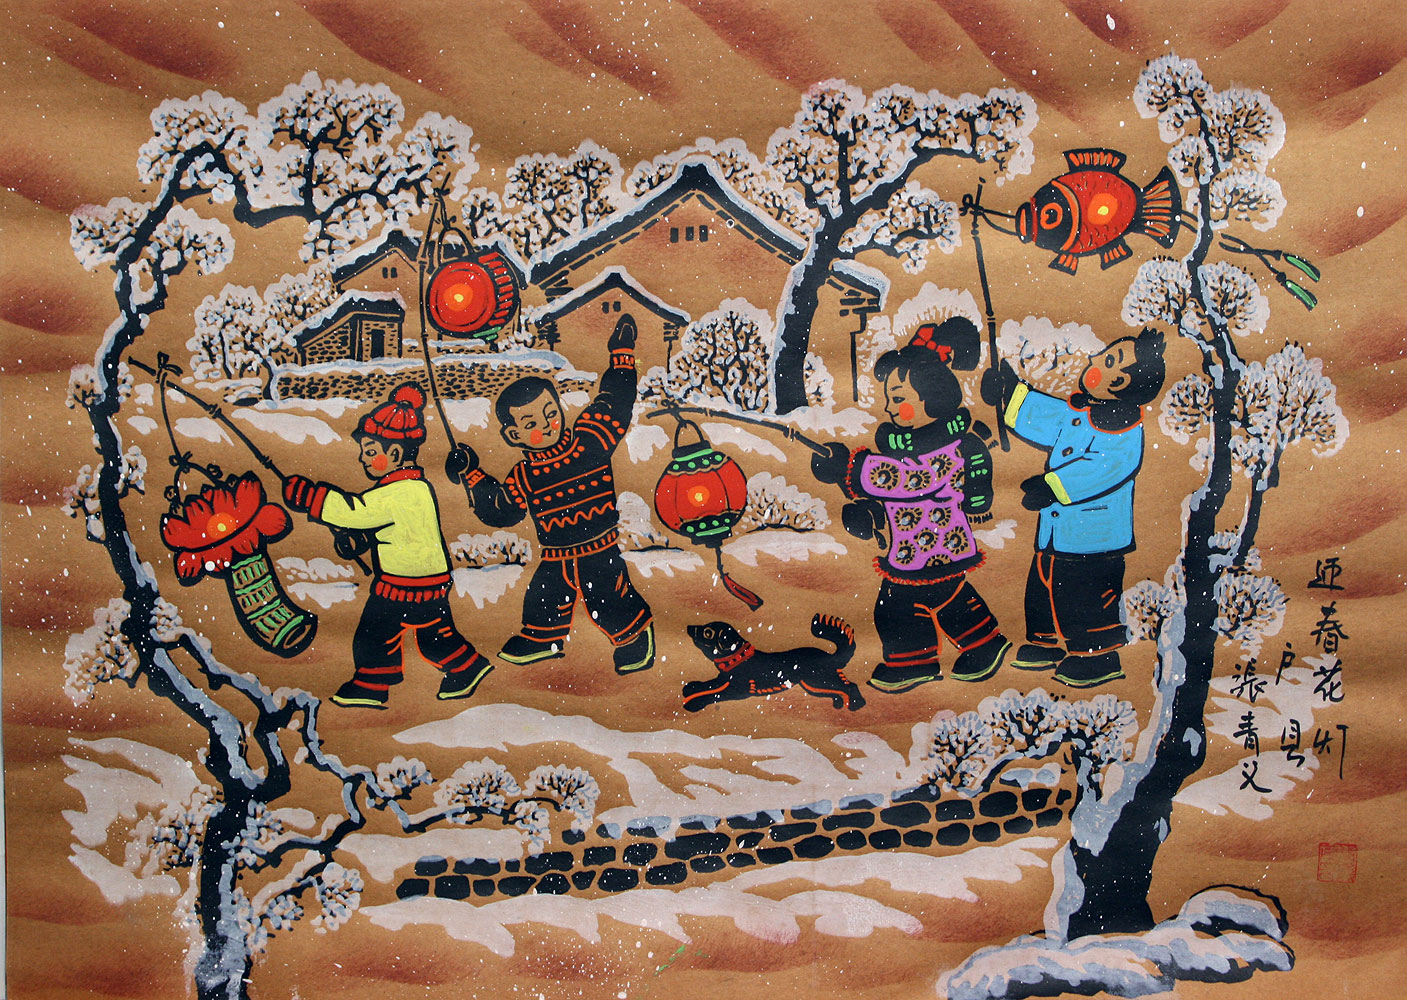 Paper Lanterns Greeting the Springtime - Chinese Folk Art Painting